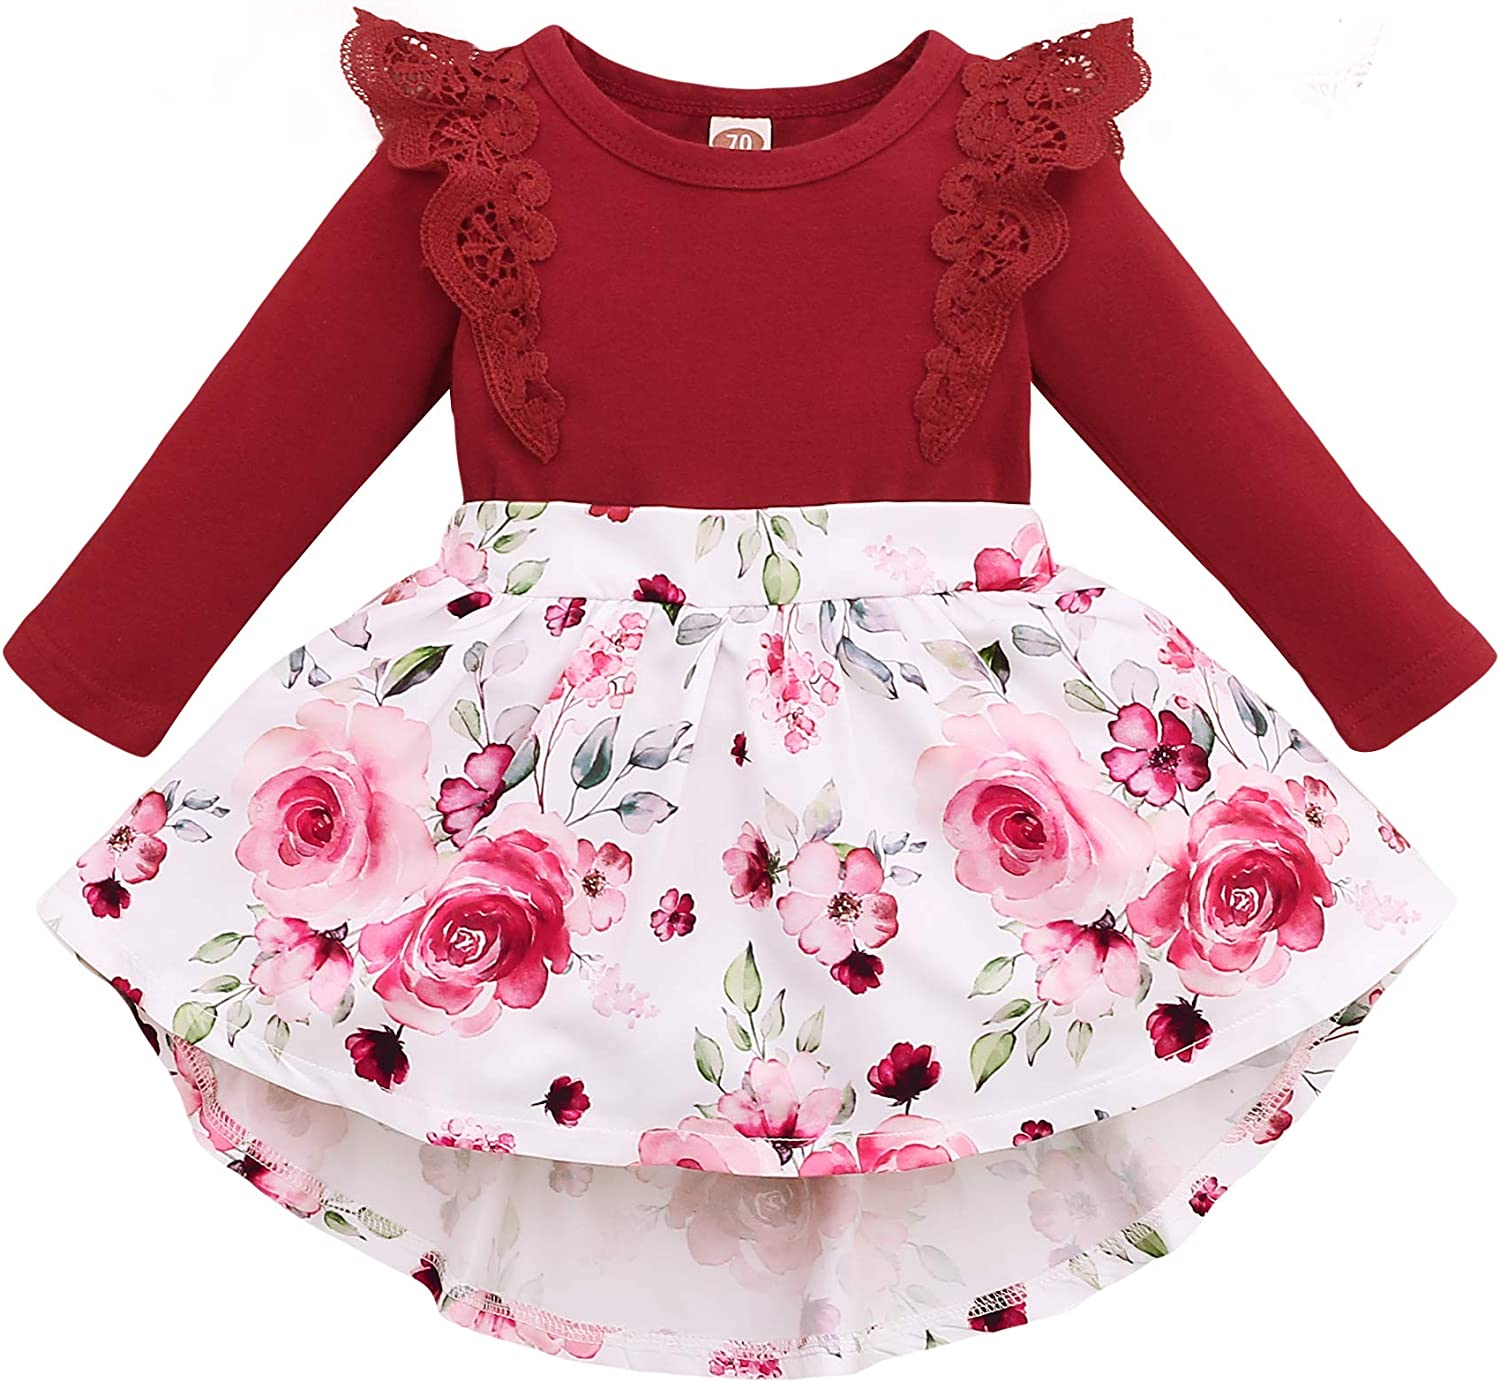 Max 45% OFF OLLUISNEO Infant Baby Girl Dress Sleeve Outfits Long Fall Winter Finally popular brand